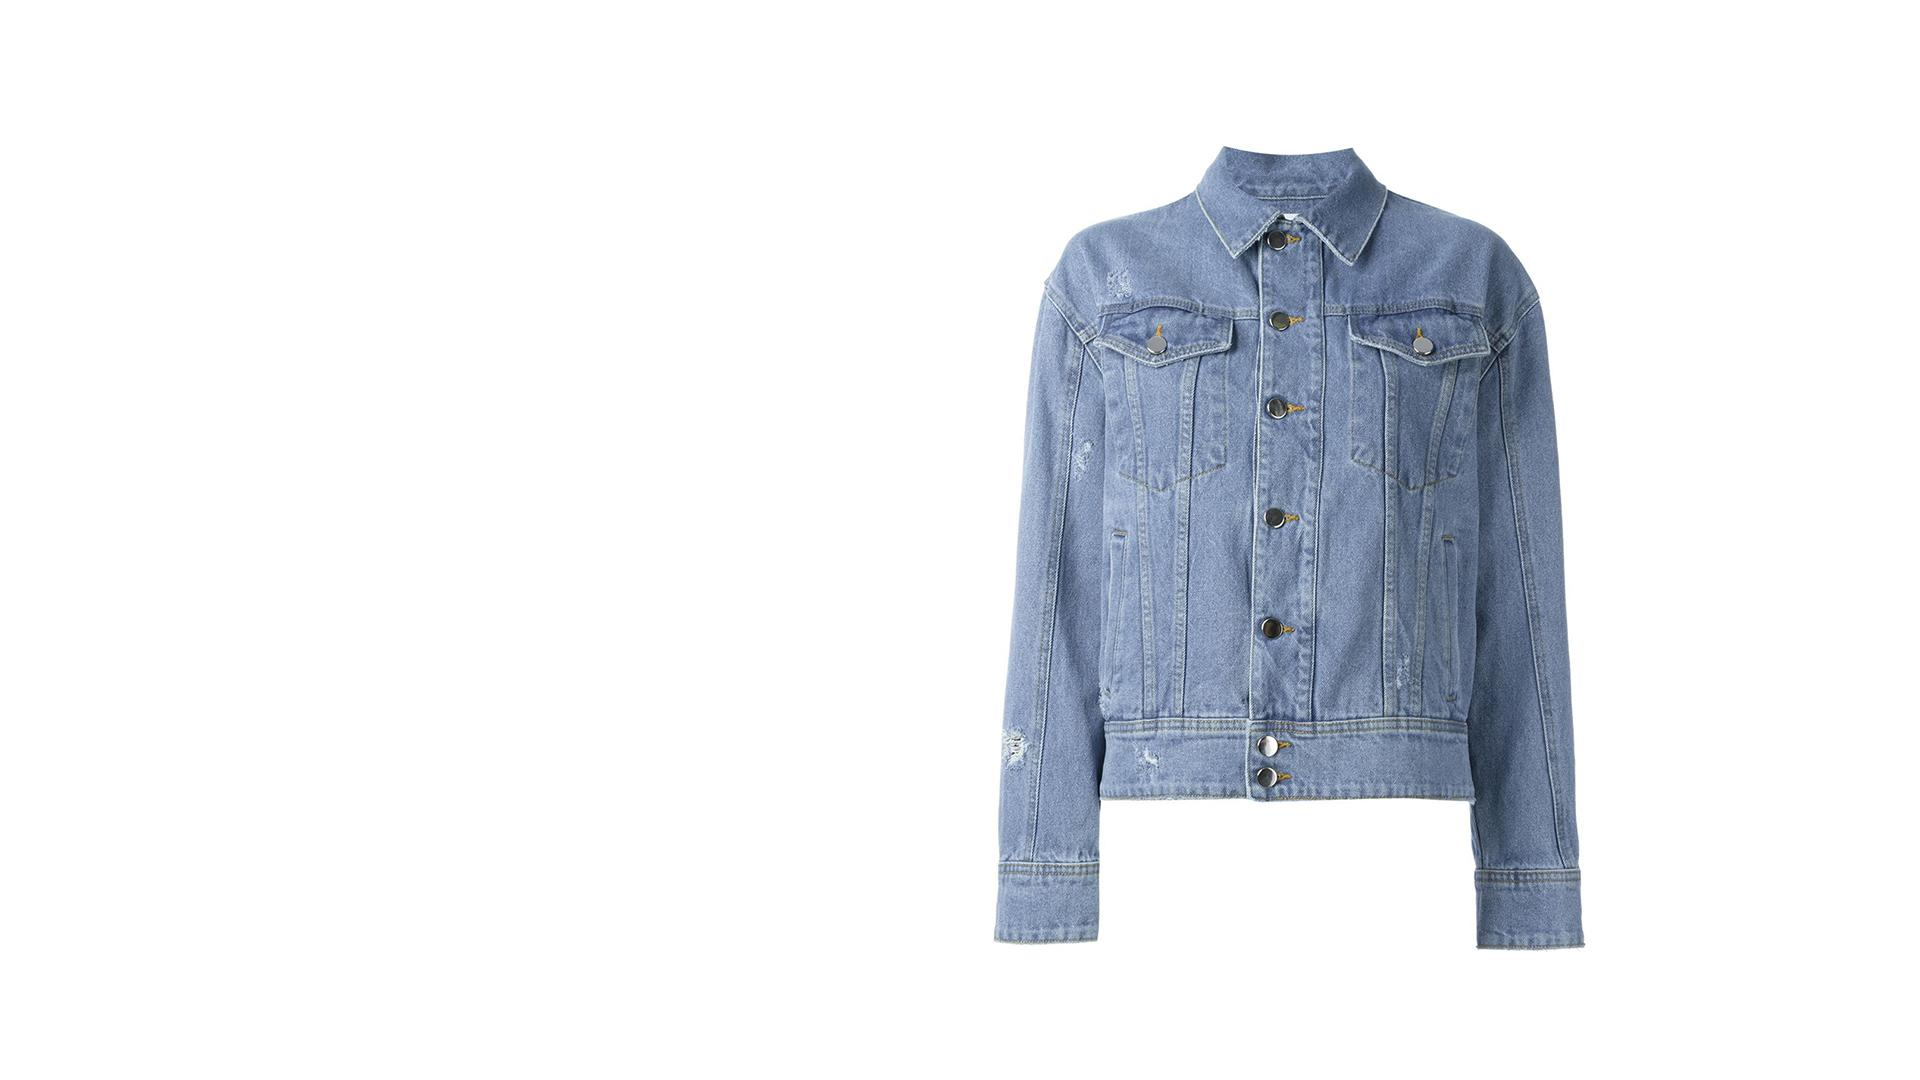 Denim Jacket - Zara Larsson